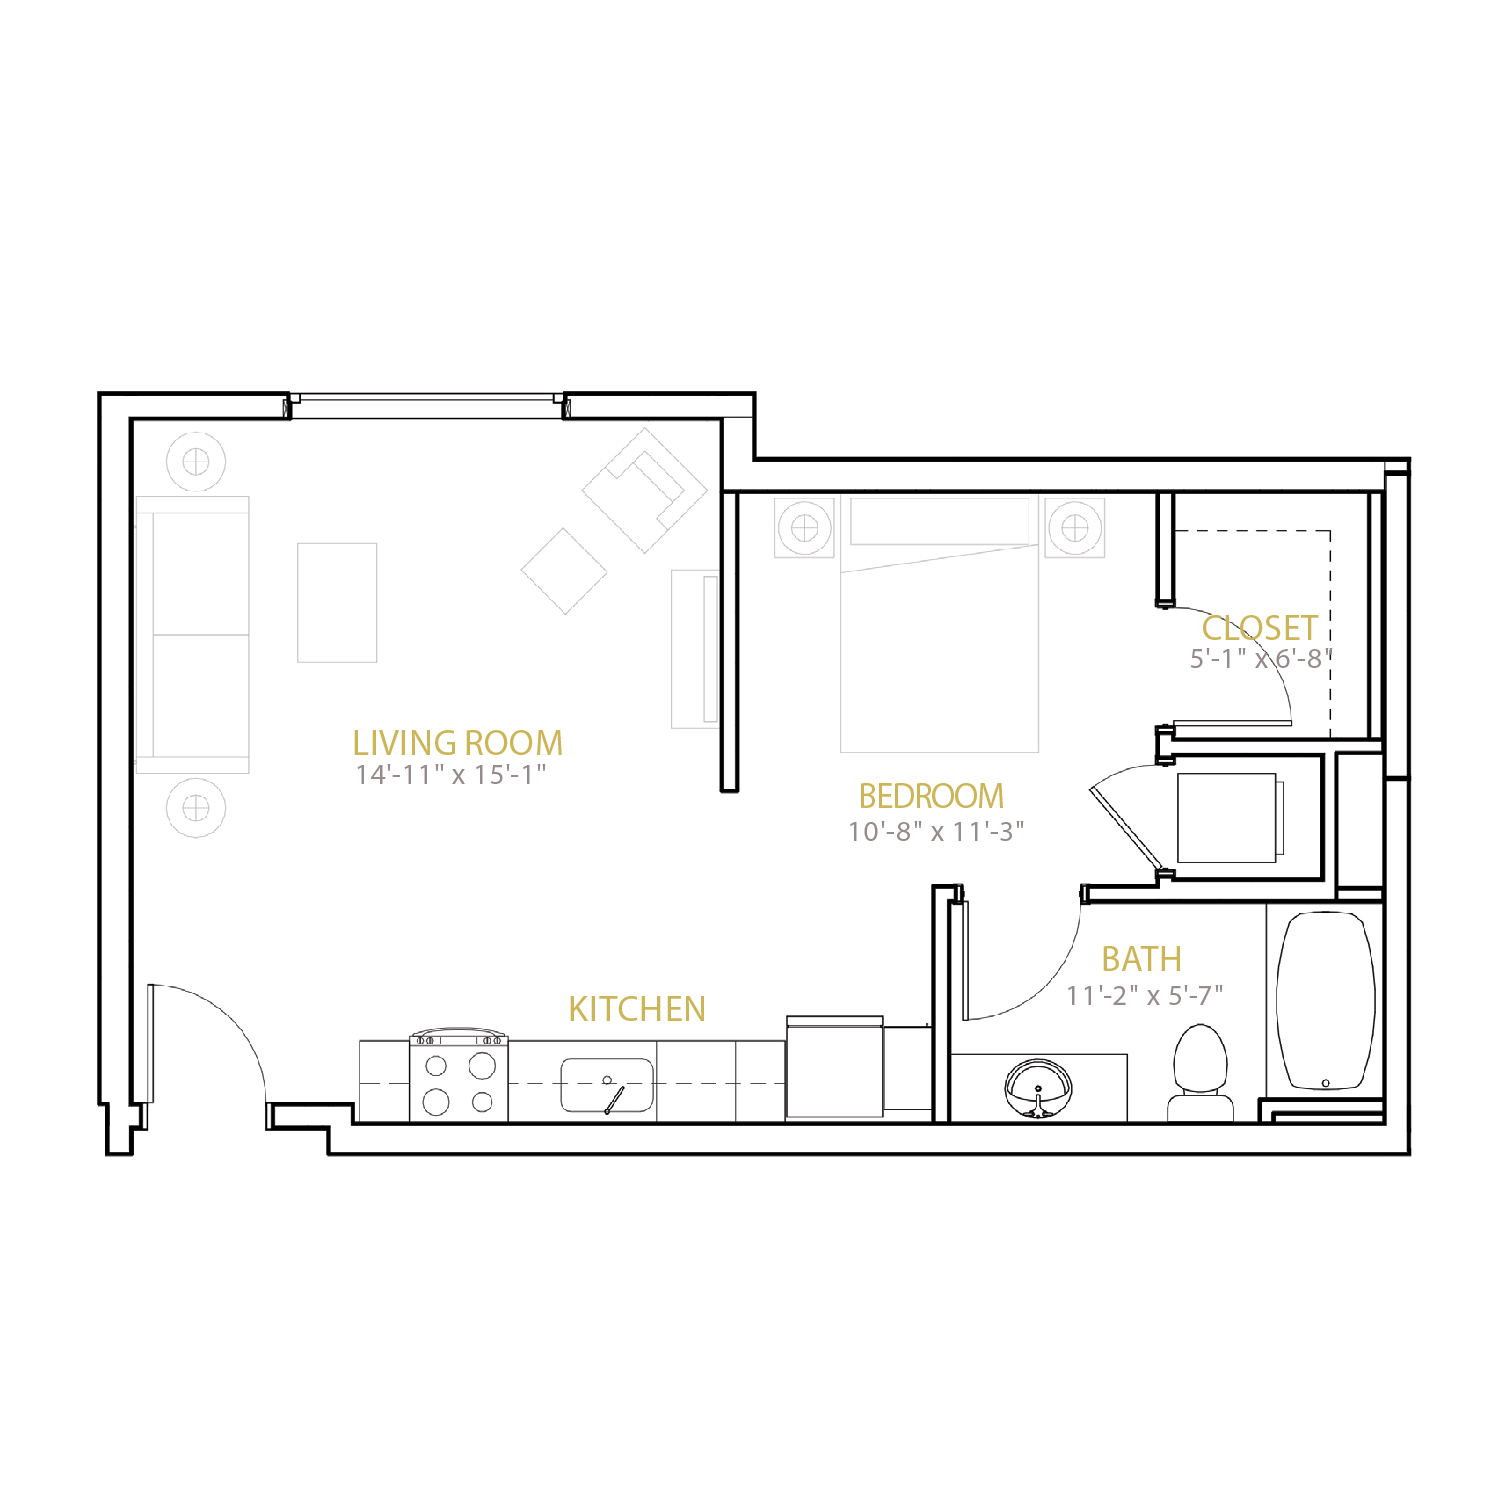 A Four floor plan diagram. A studio apartment with one bathroom and an open kitchen and living space.